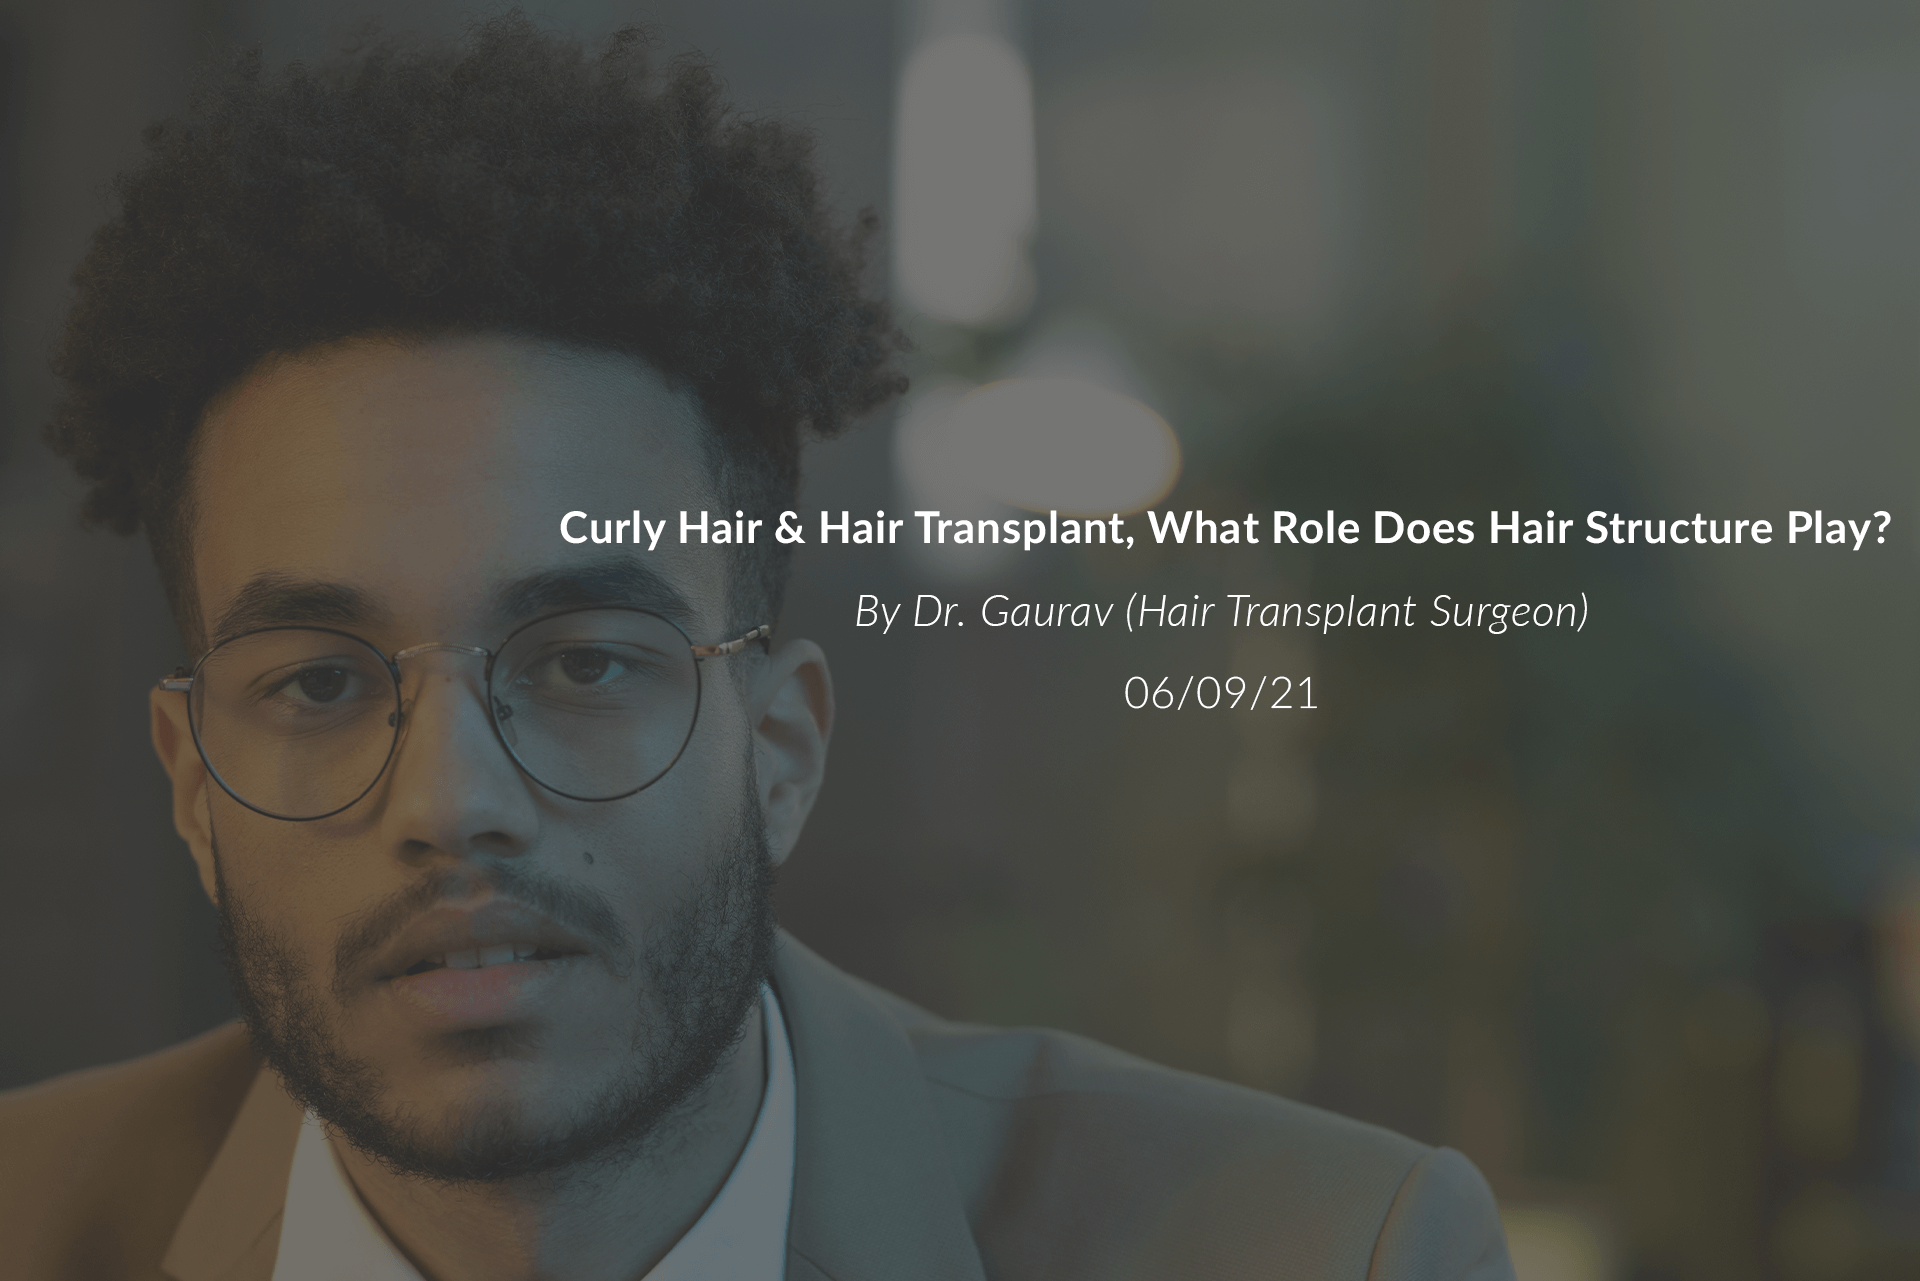 Curly Hair & Hair Transplant, What Role Does Hair Structure Play?